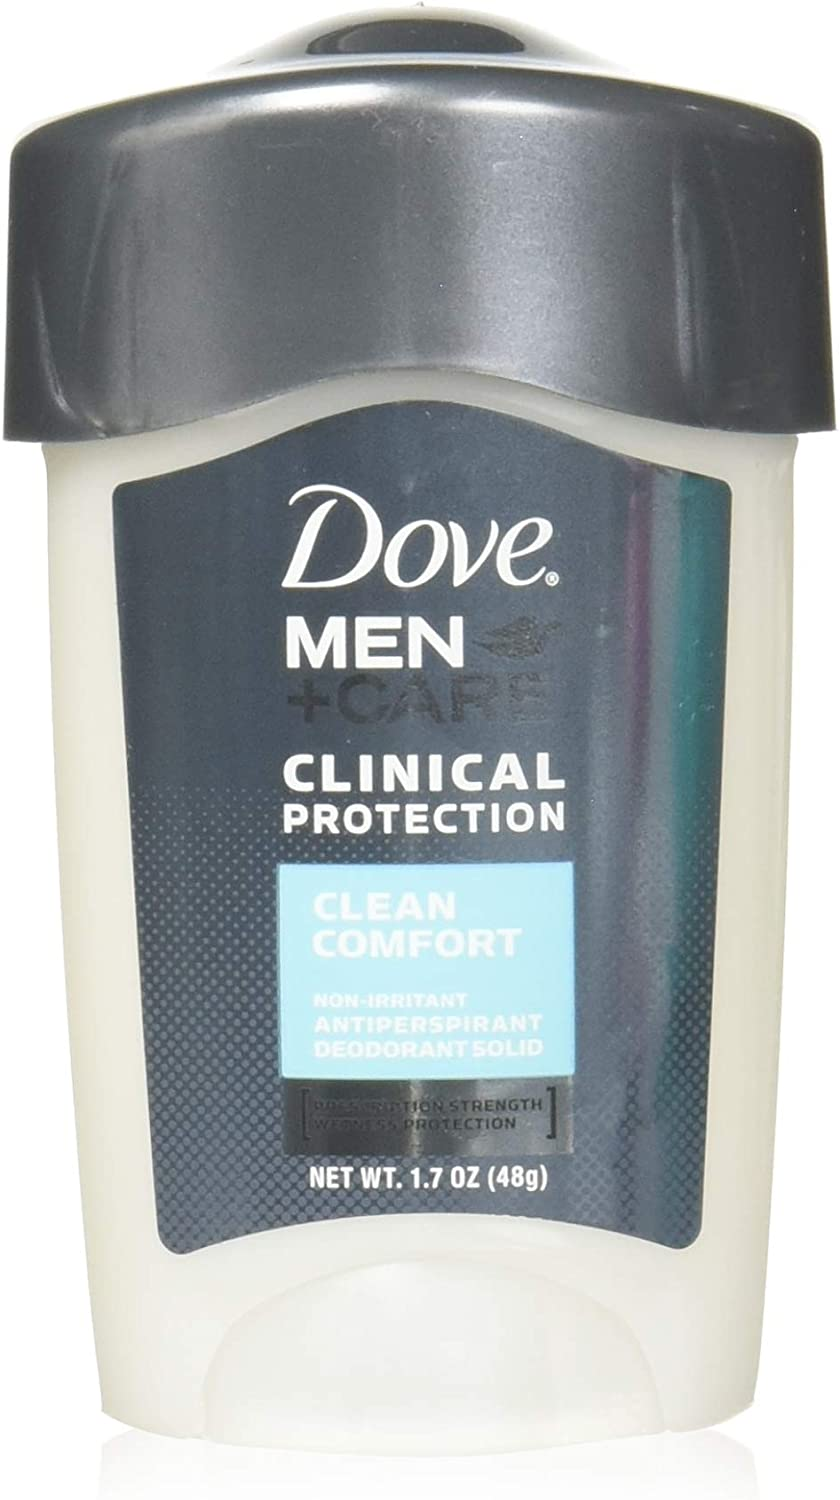 Dove Clinical Protection Clean Comfort Anti Perspirant and Deodorant, 1.7 Ounce - 3 per case.